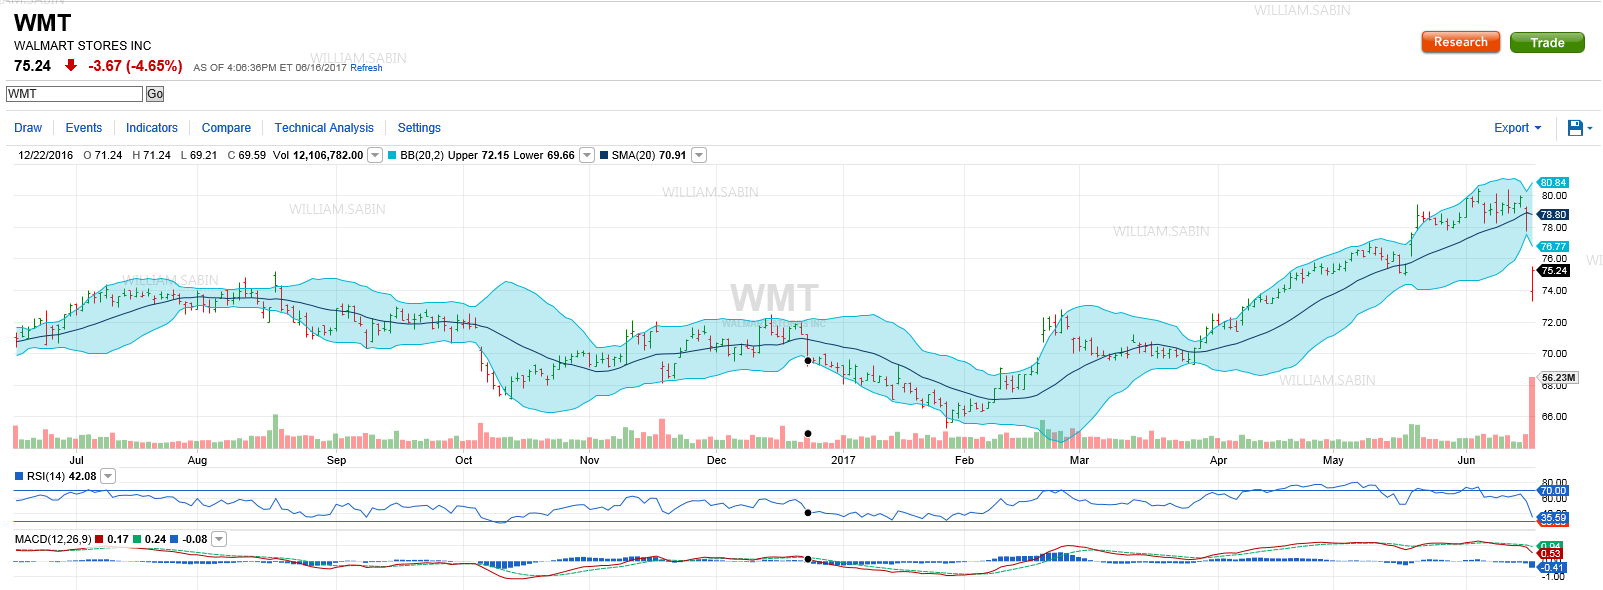 from a technical standpoint it appears that wal mart will trend lower and test the support at 701